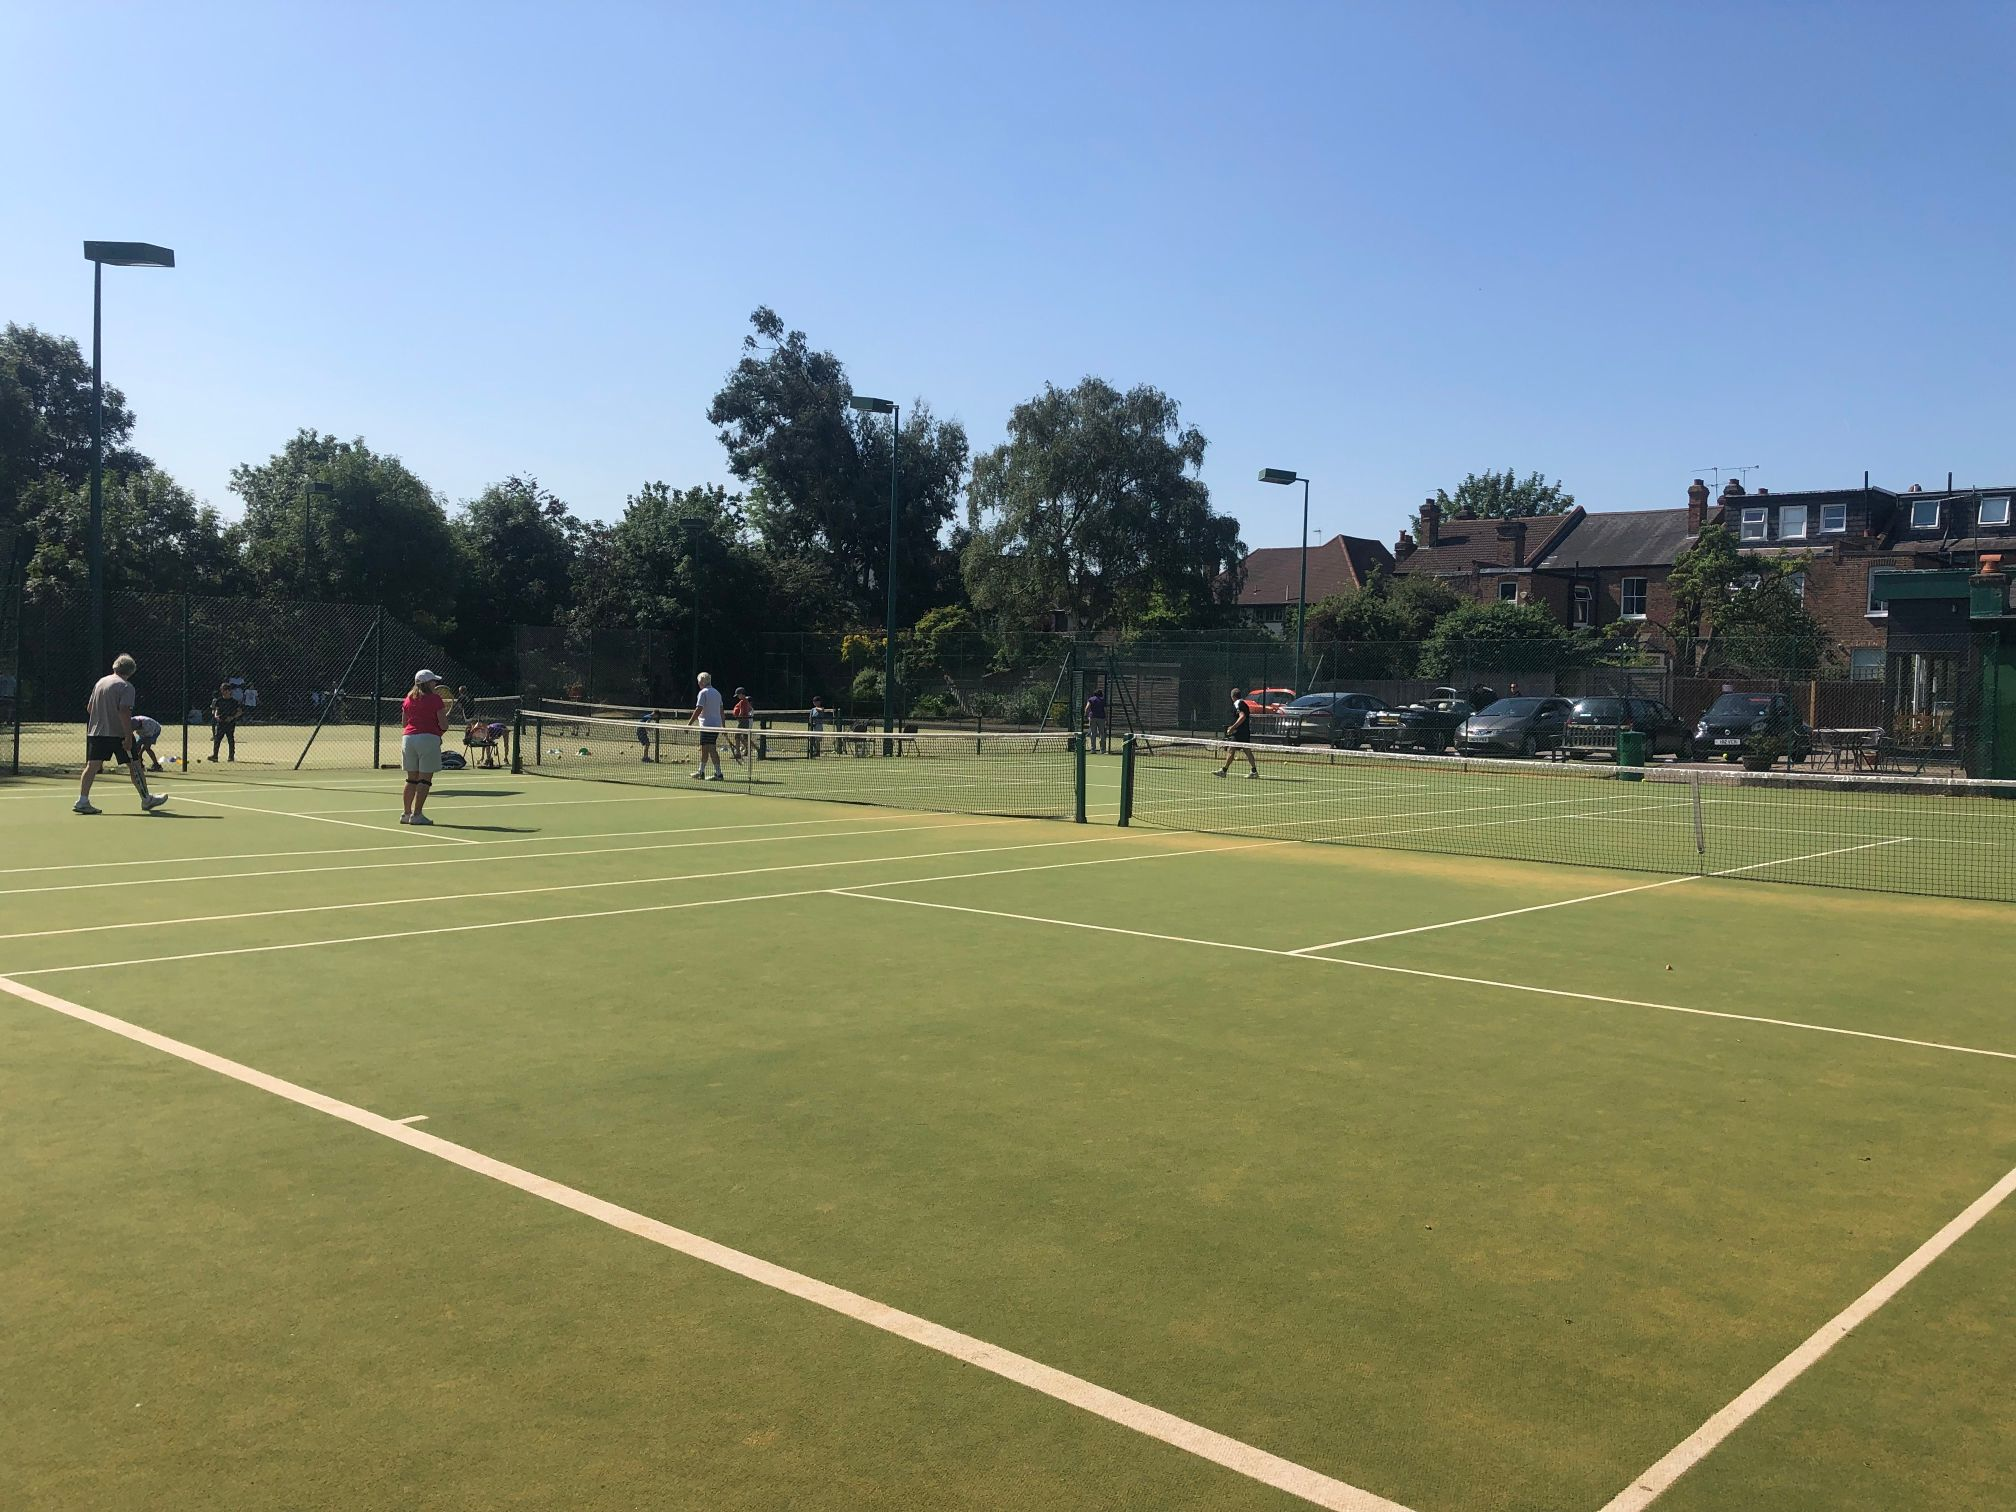 Members at Our Lady of Muswell Hill LTC are delighted with their new Playrite Matchplay 2 courts.